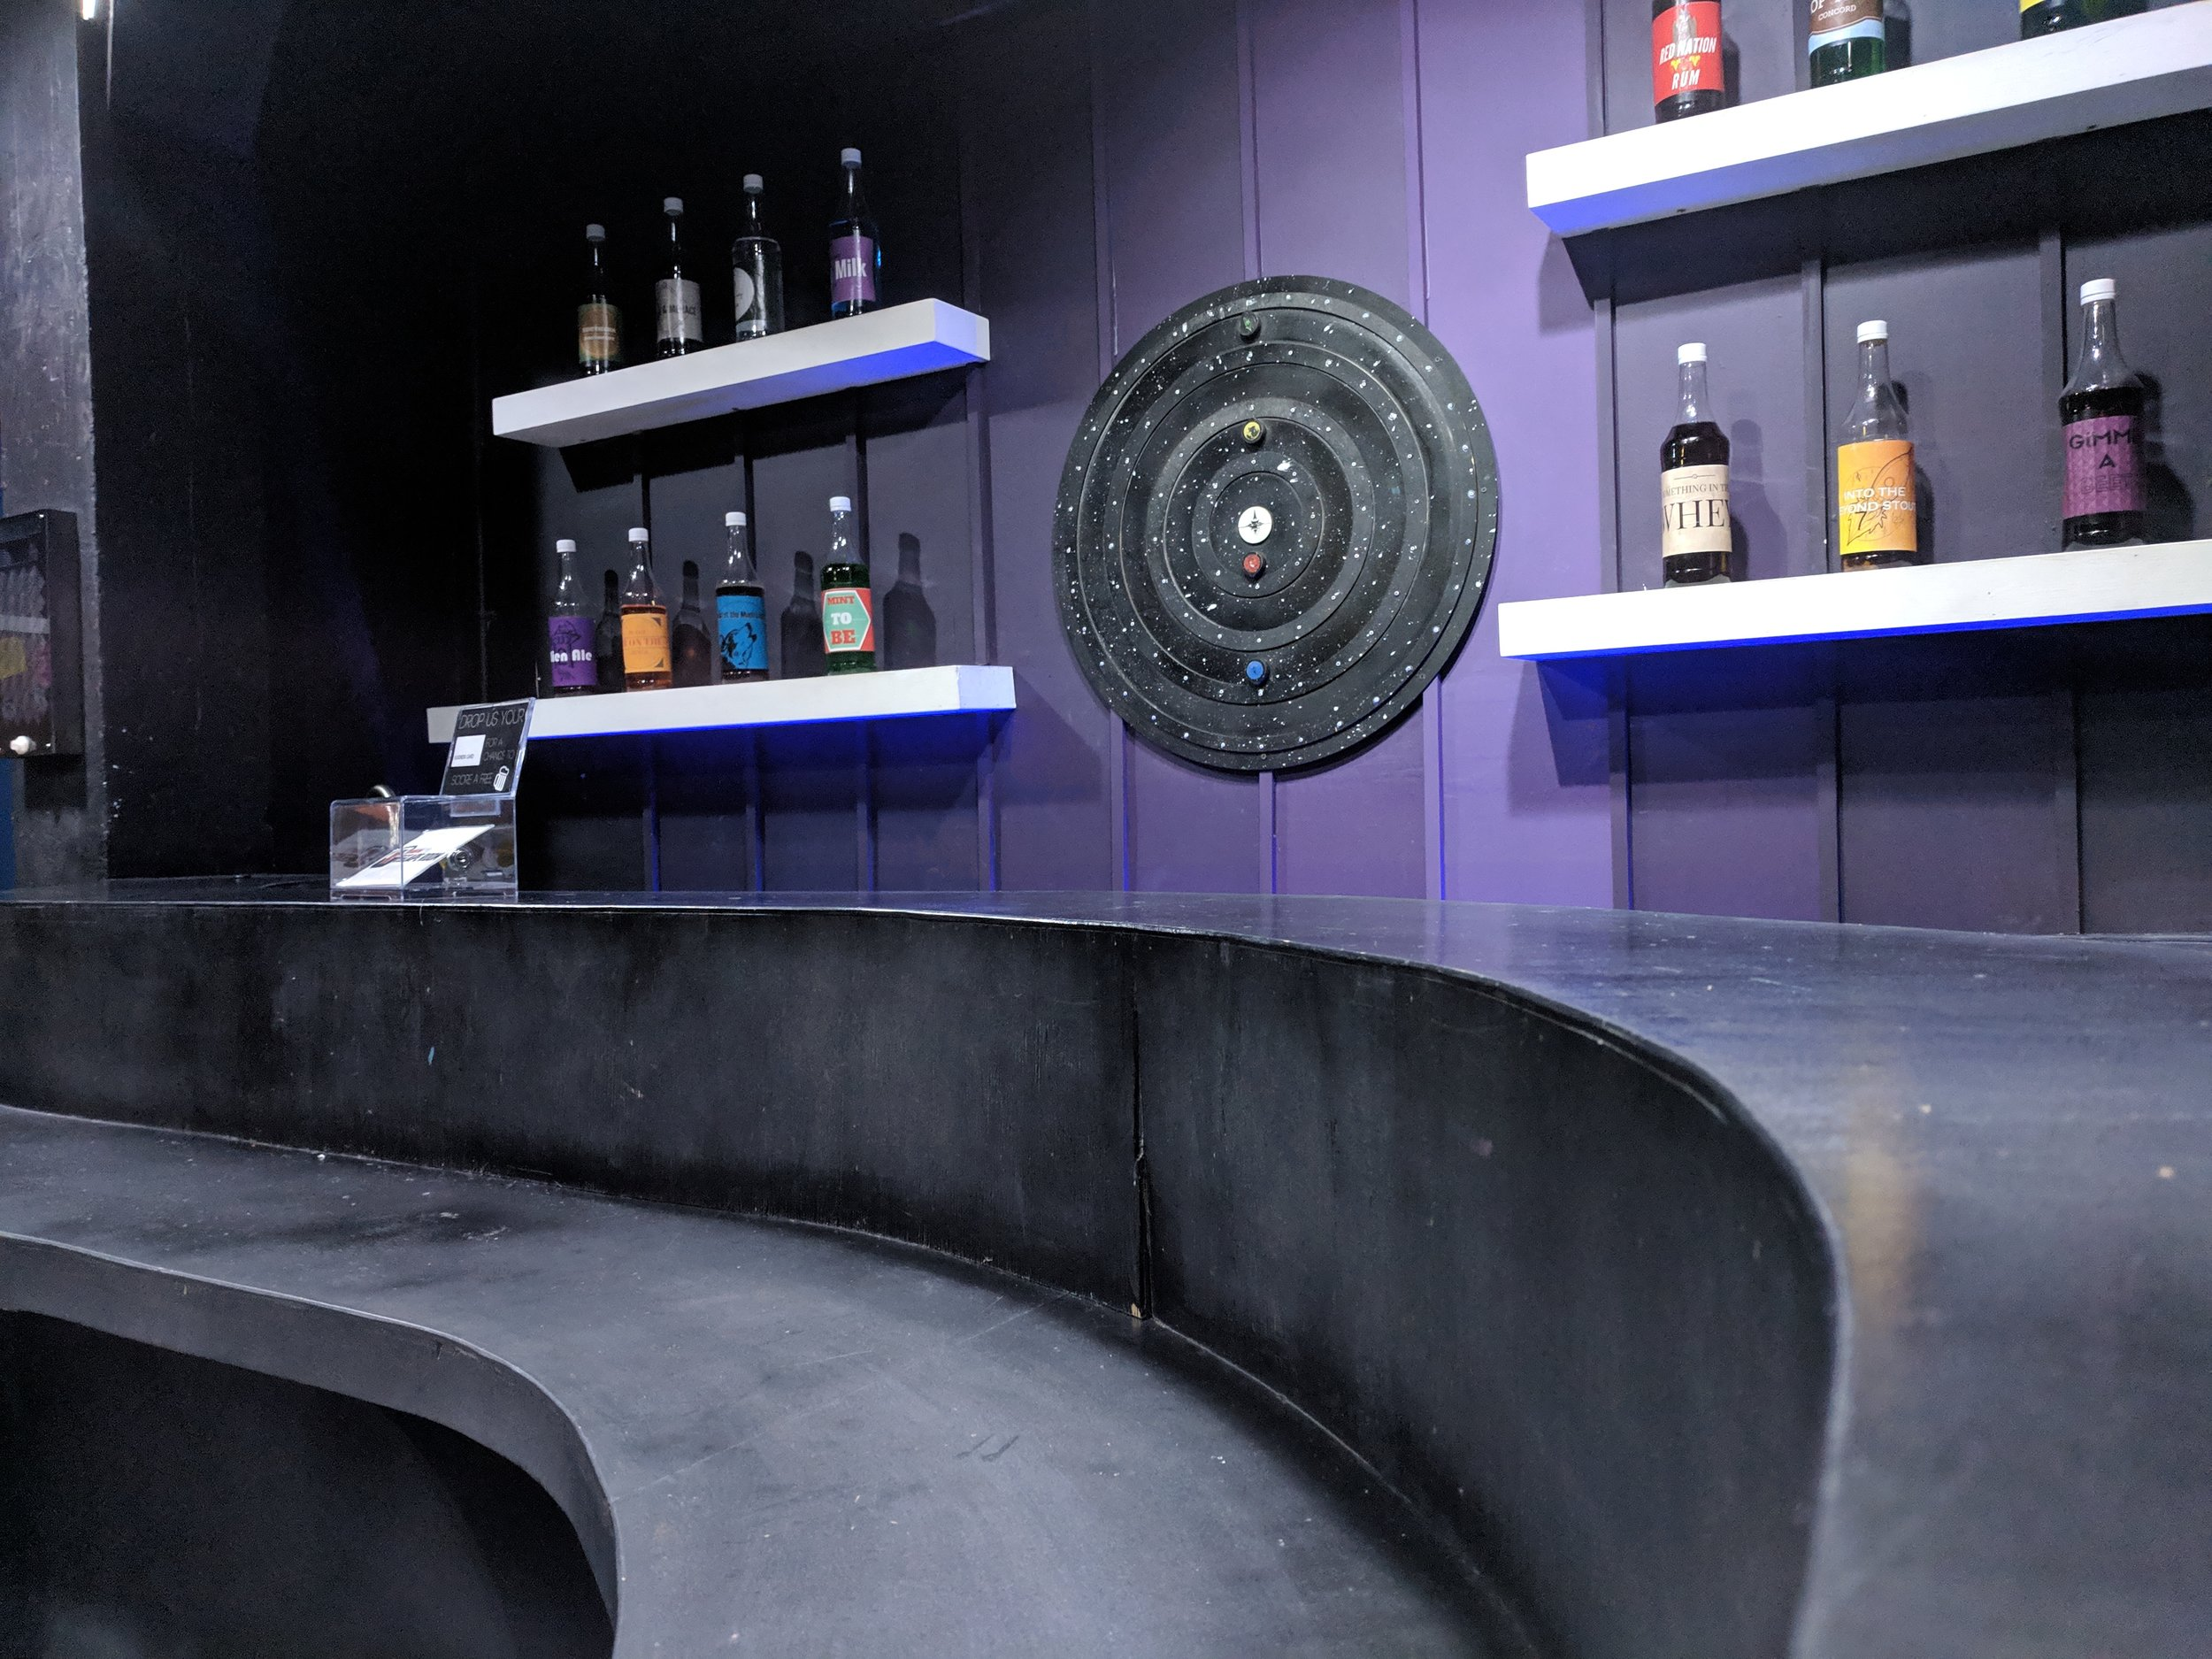 Dark Side of the Moon - Explore the space-themed bar Dark Side of the Moon and help expose the heinous PharmaCo!